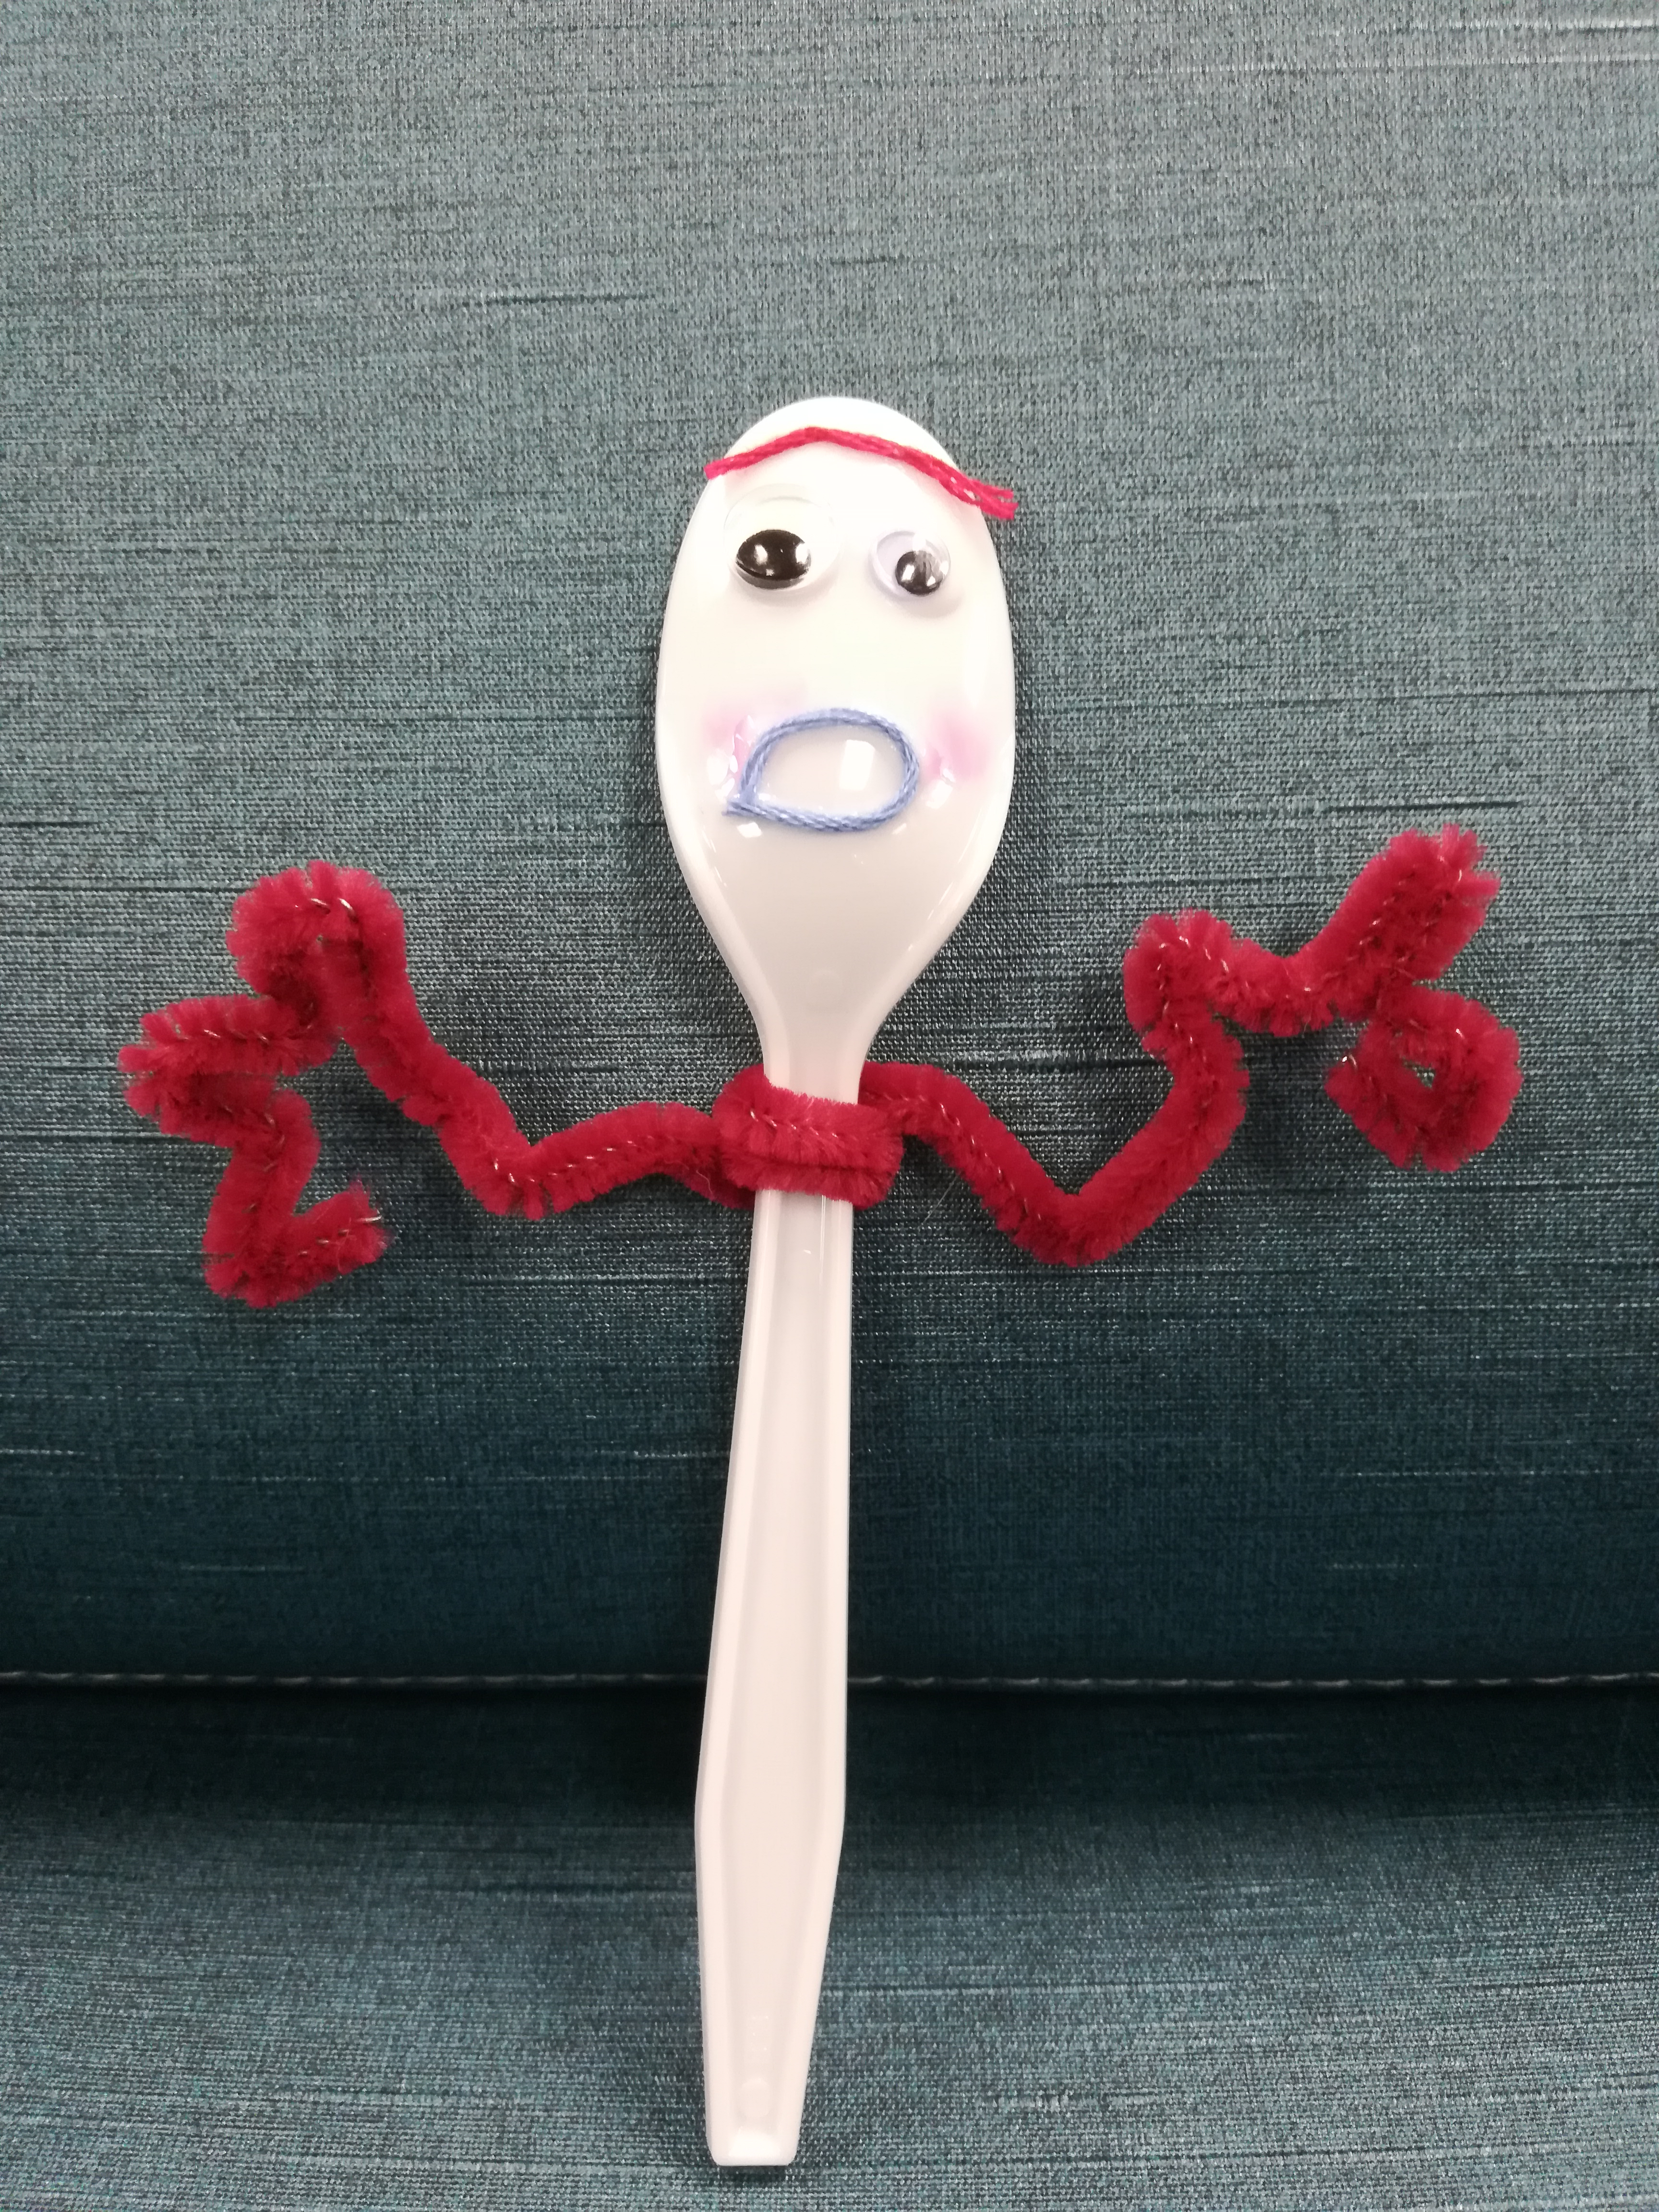 a spoon puppet